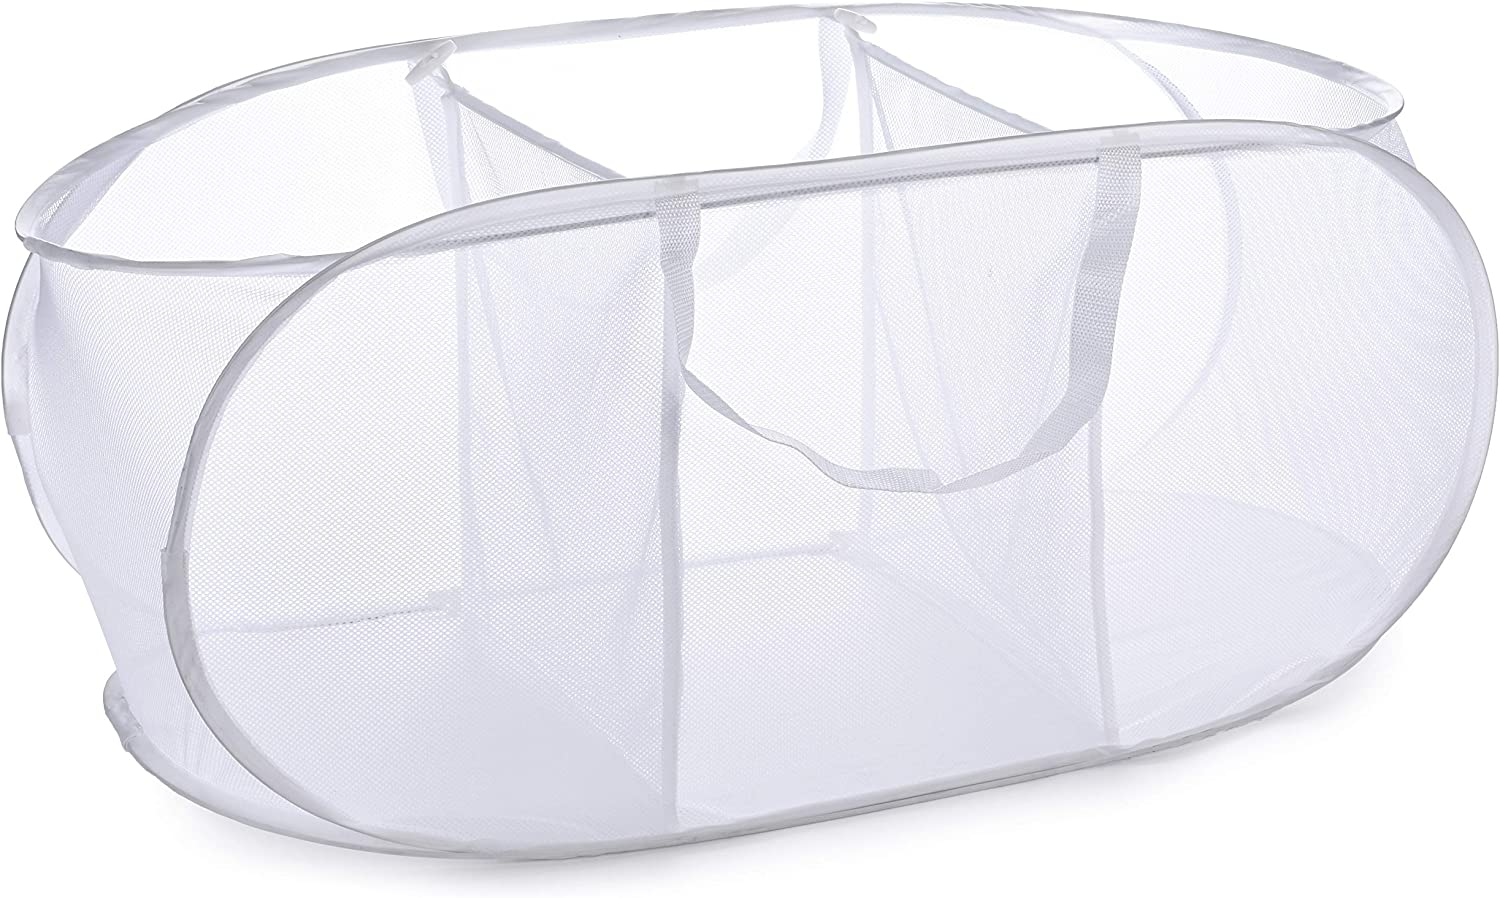 Popup Laundry Basket, Three Compartments - Durable Mesh Material, Folds for Storage, Easy Carry Handles. Folding Pop-Up Laundry Basket Bins are Great for College Dorm Laundry Room or Travel. (White)